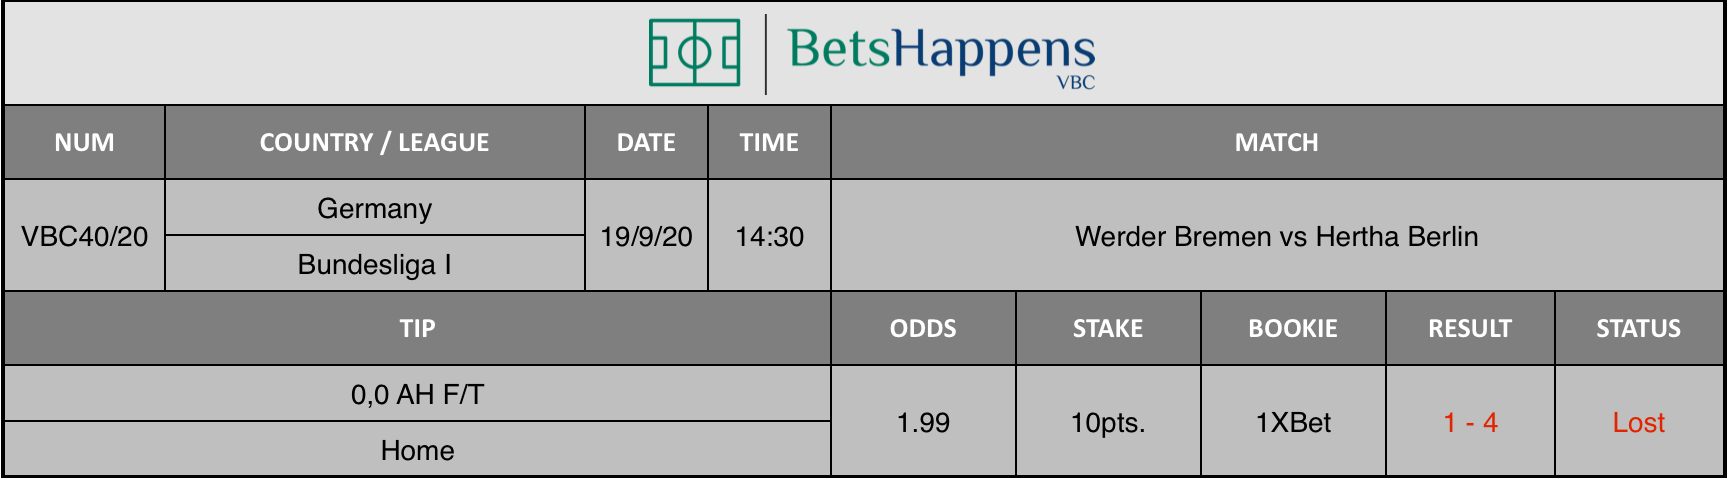 Results of our advice for the Werder Bremen vs Hertha Berlin match in which 0.0 AH F / T Home is recommended.